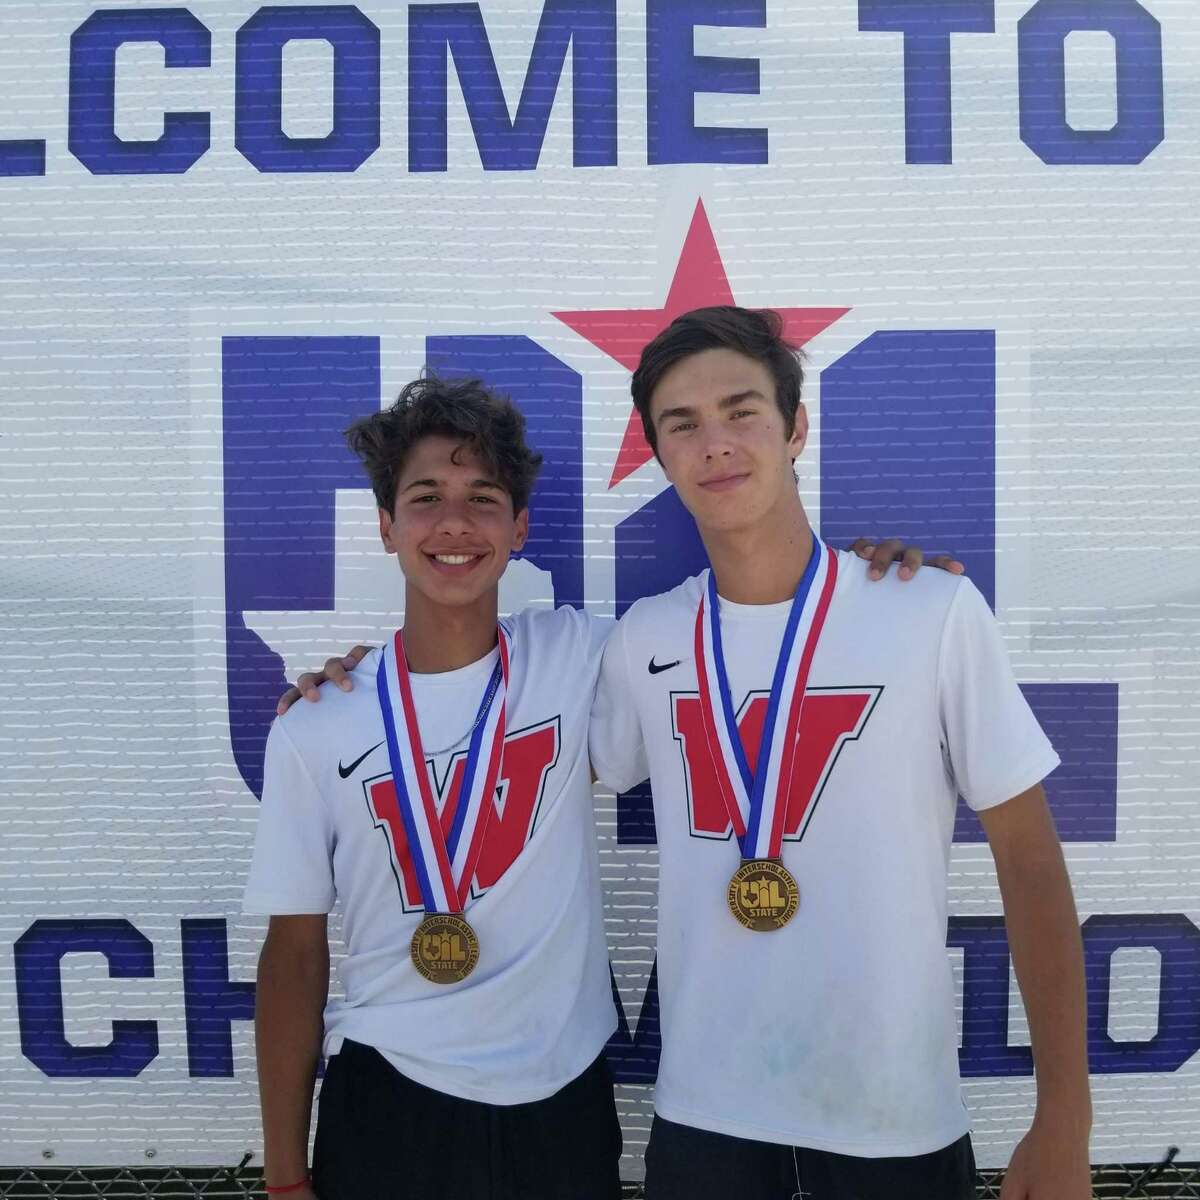 The Woodlands Emilio Lopez, right, and Jose Perez reached the state semifinals in the Class 6A boys doubles division.